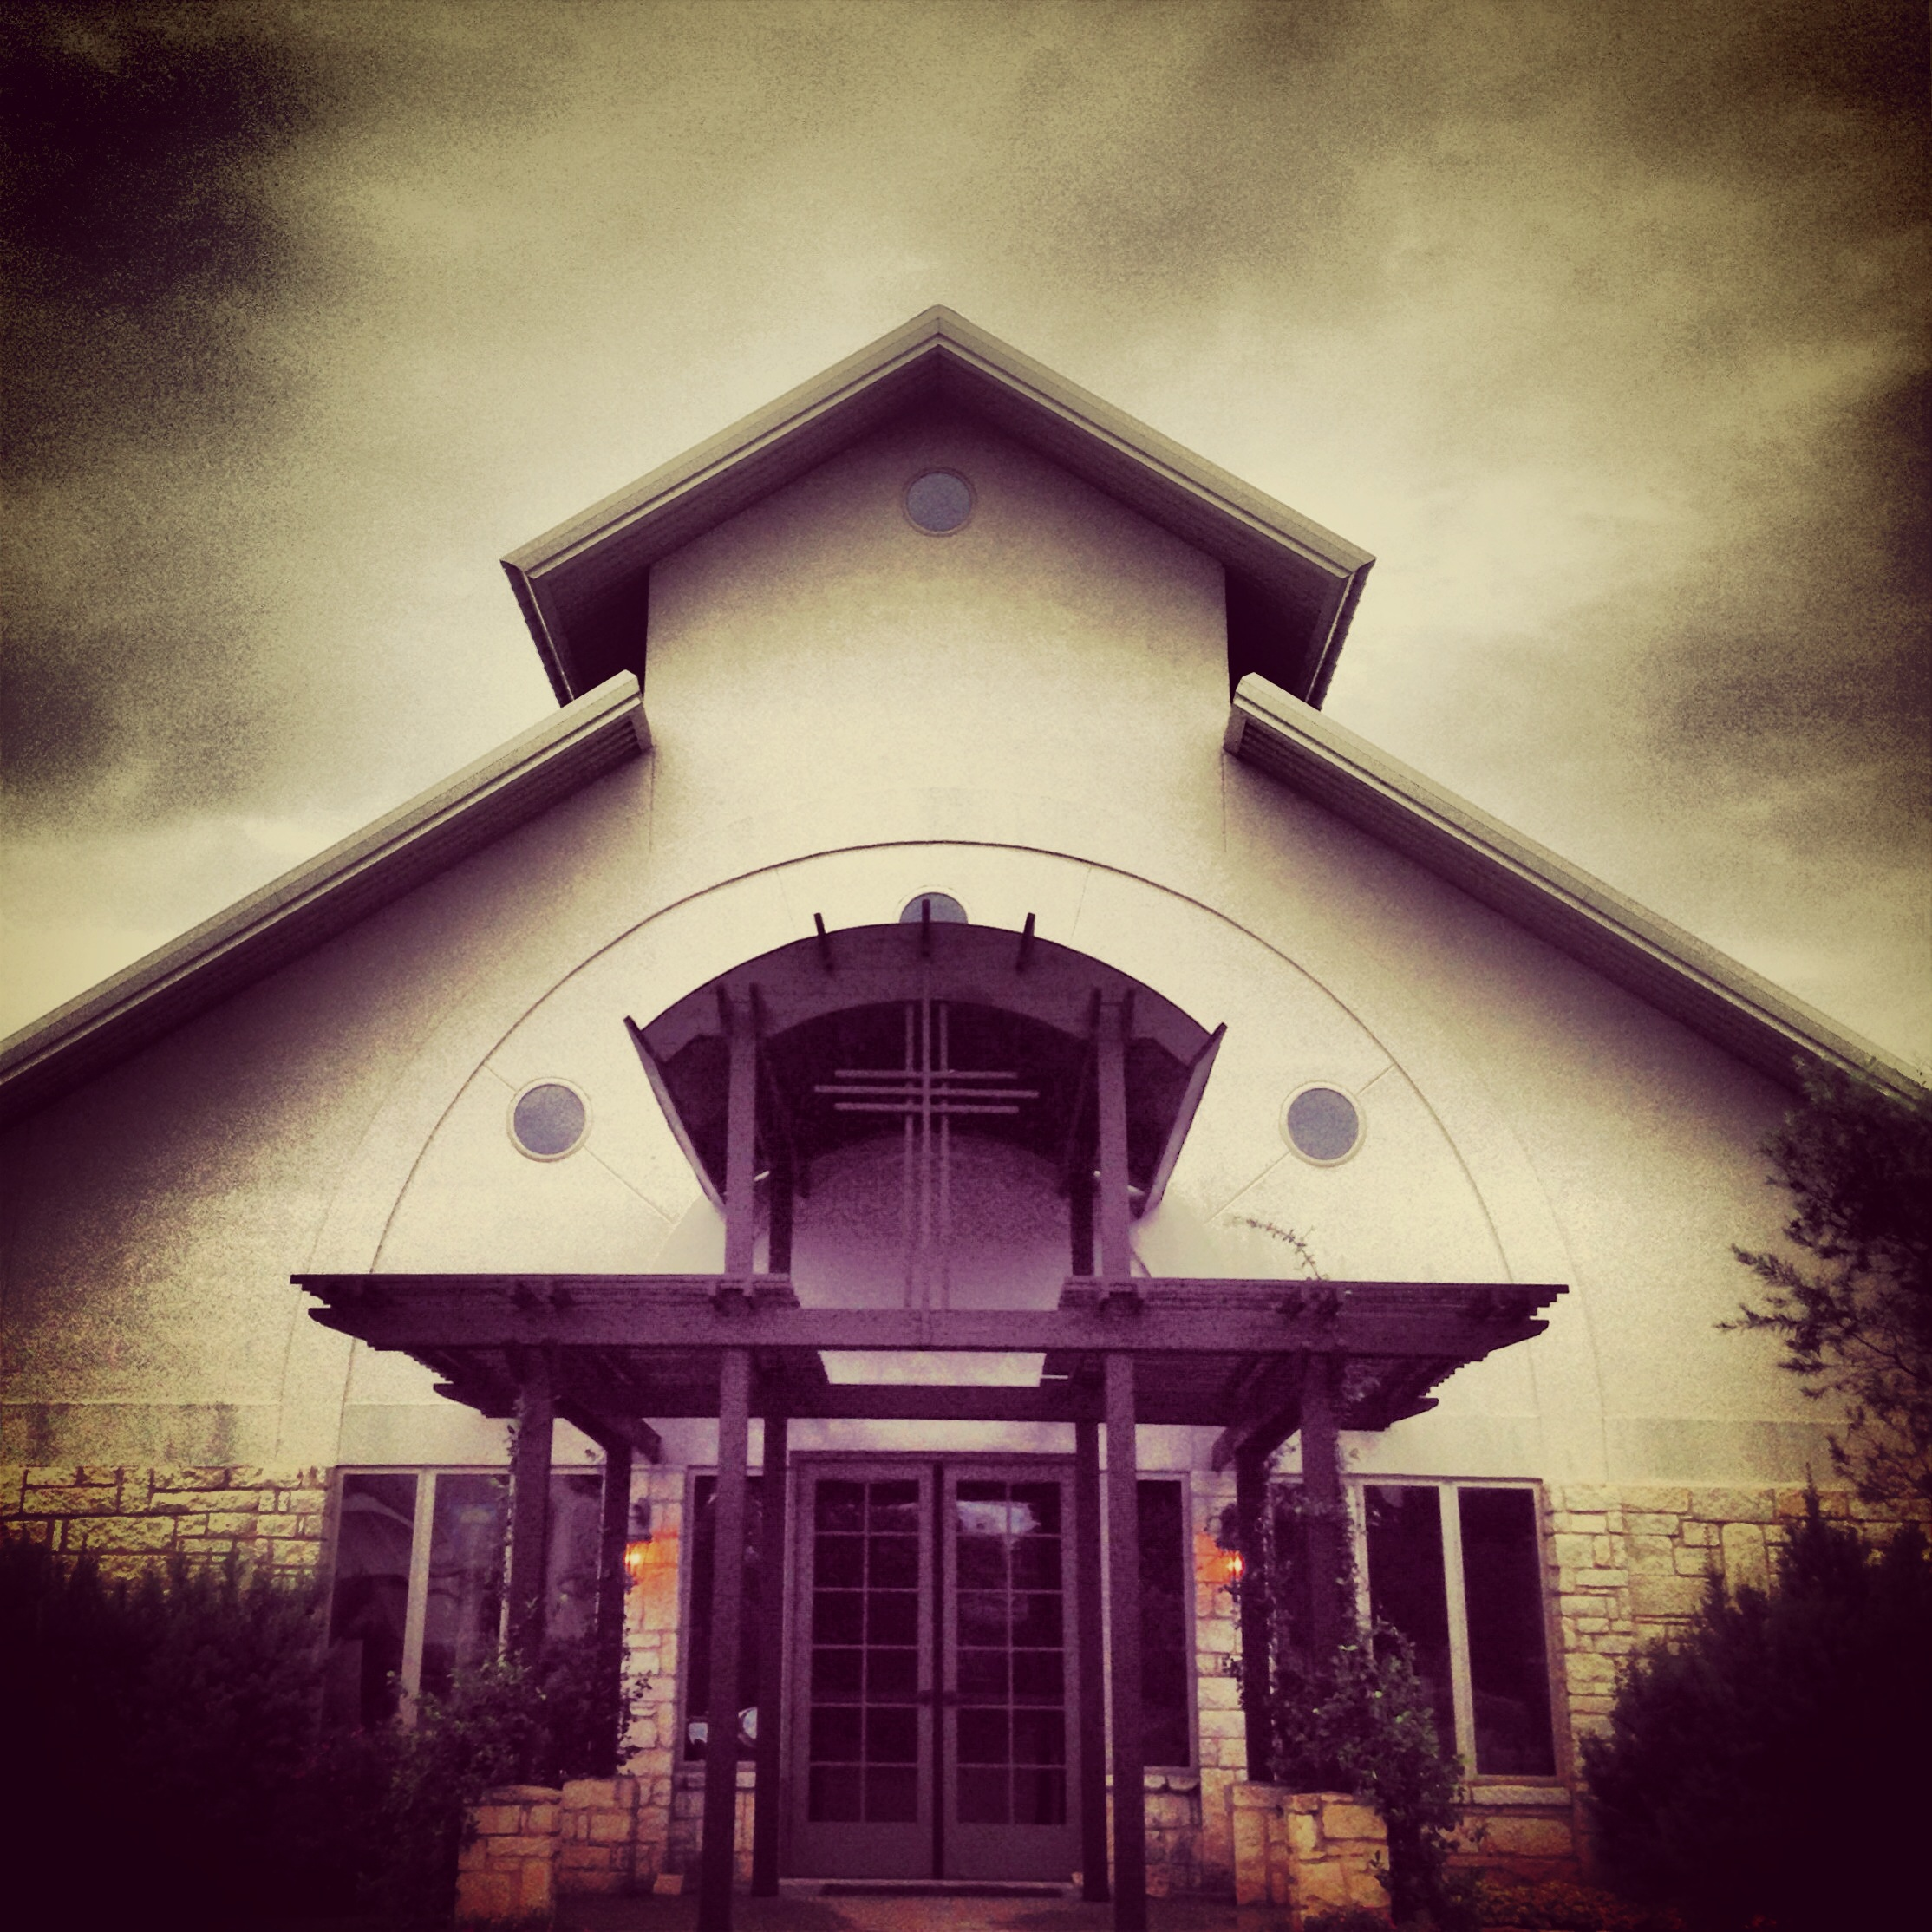 DaySpring Baptist Church